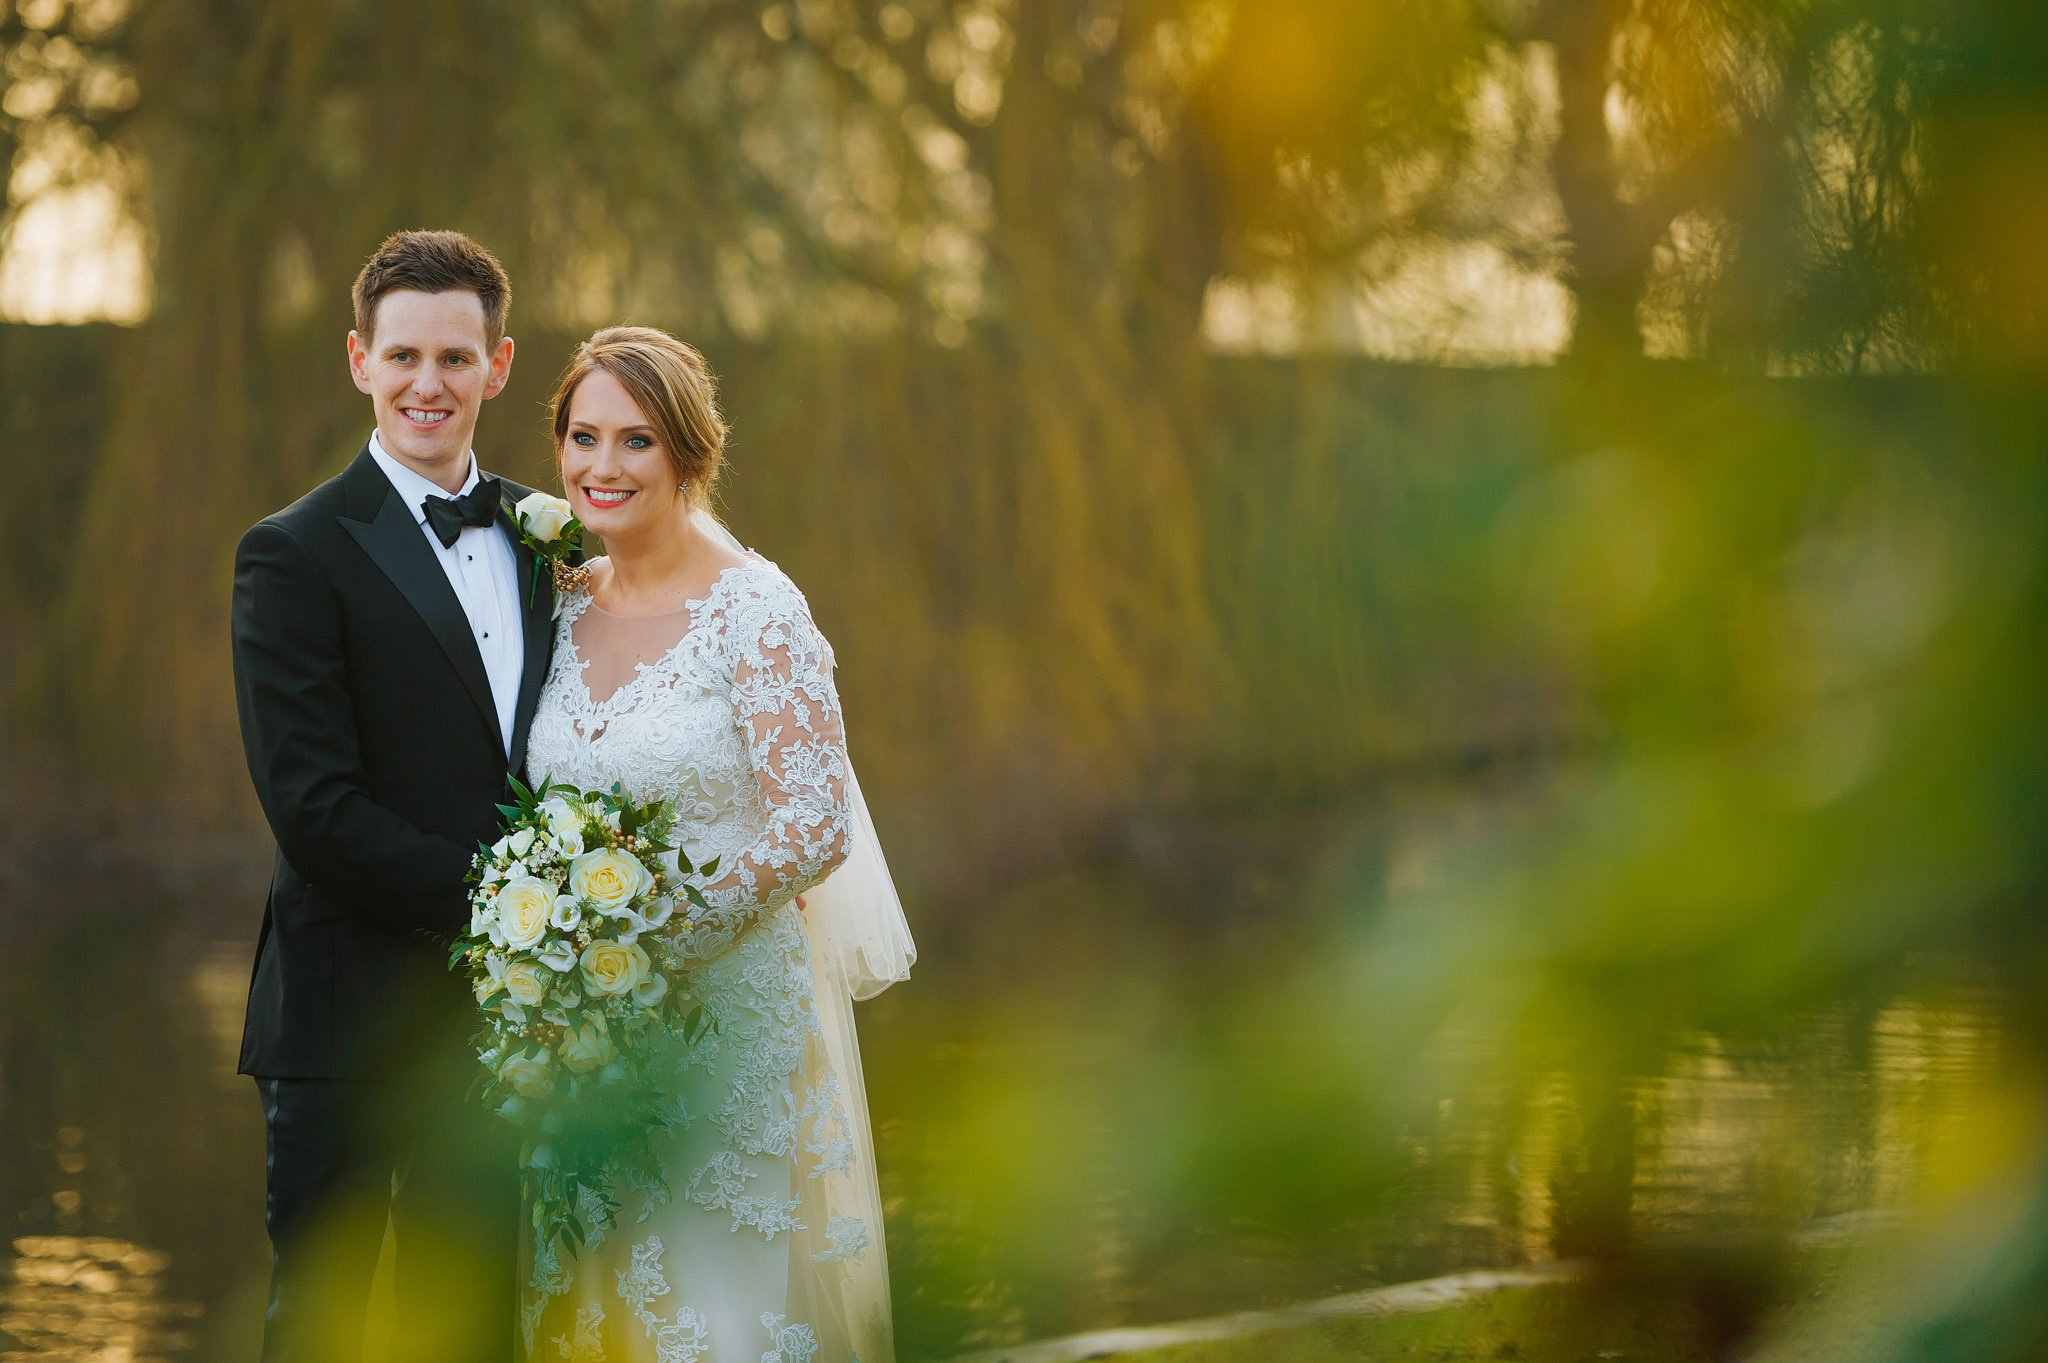 coombe abbey wedding coventry 93 - Coombe Abbey wedding in Coventry, Warwickshire - Sam + Matt